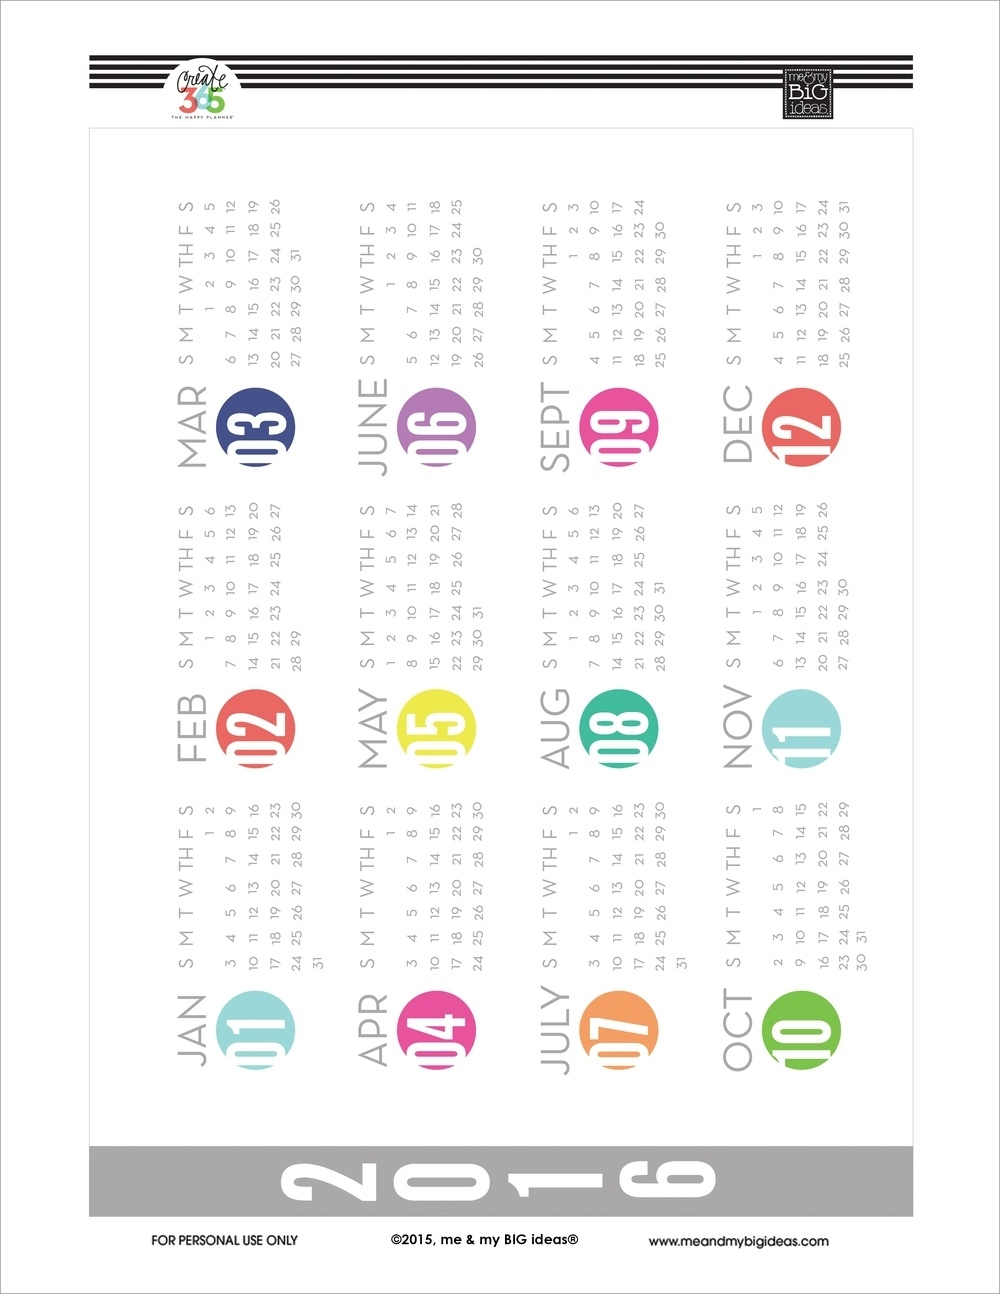 Free Printable Calendar 2016 Year At A Glance | Seven Photo  Free Printable Calendar Year At A Glance Calendar